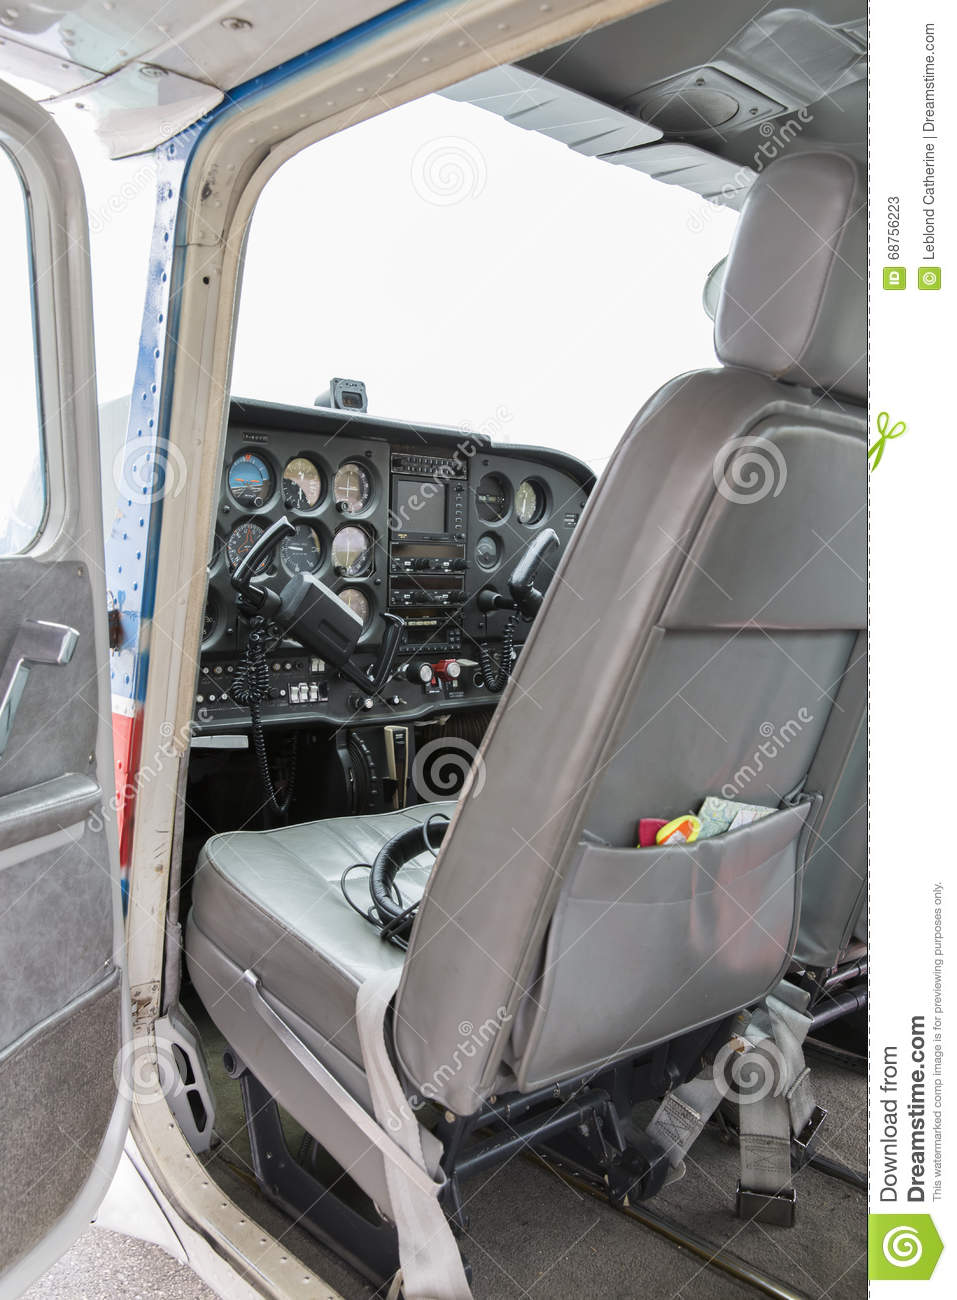 Part of cessna 172 plane stock image. Image of private ...